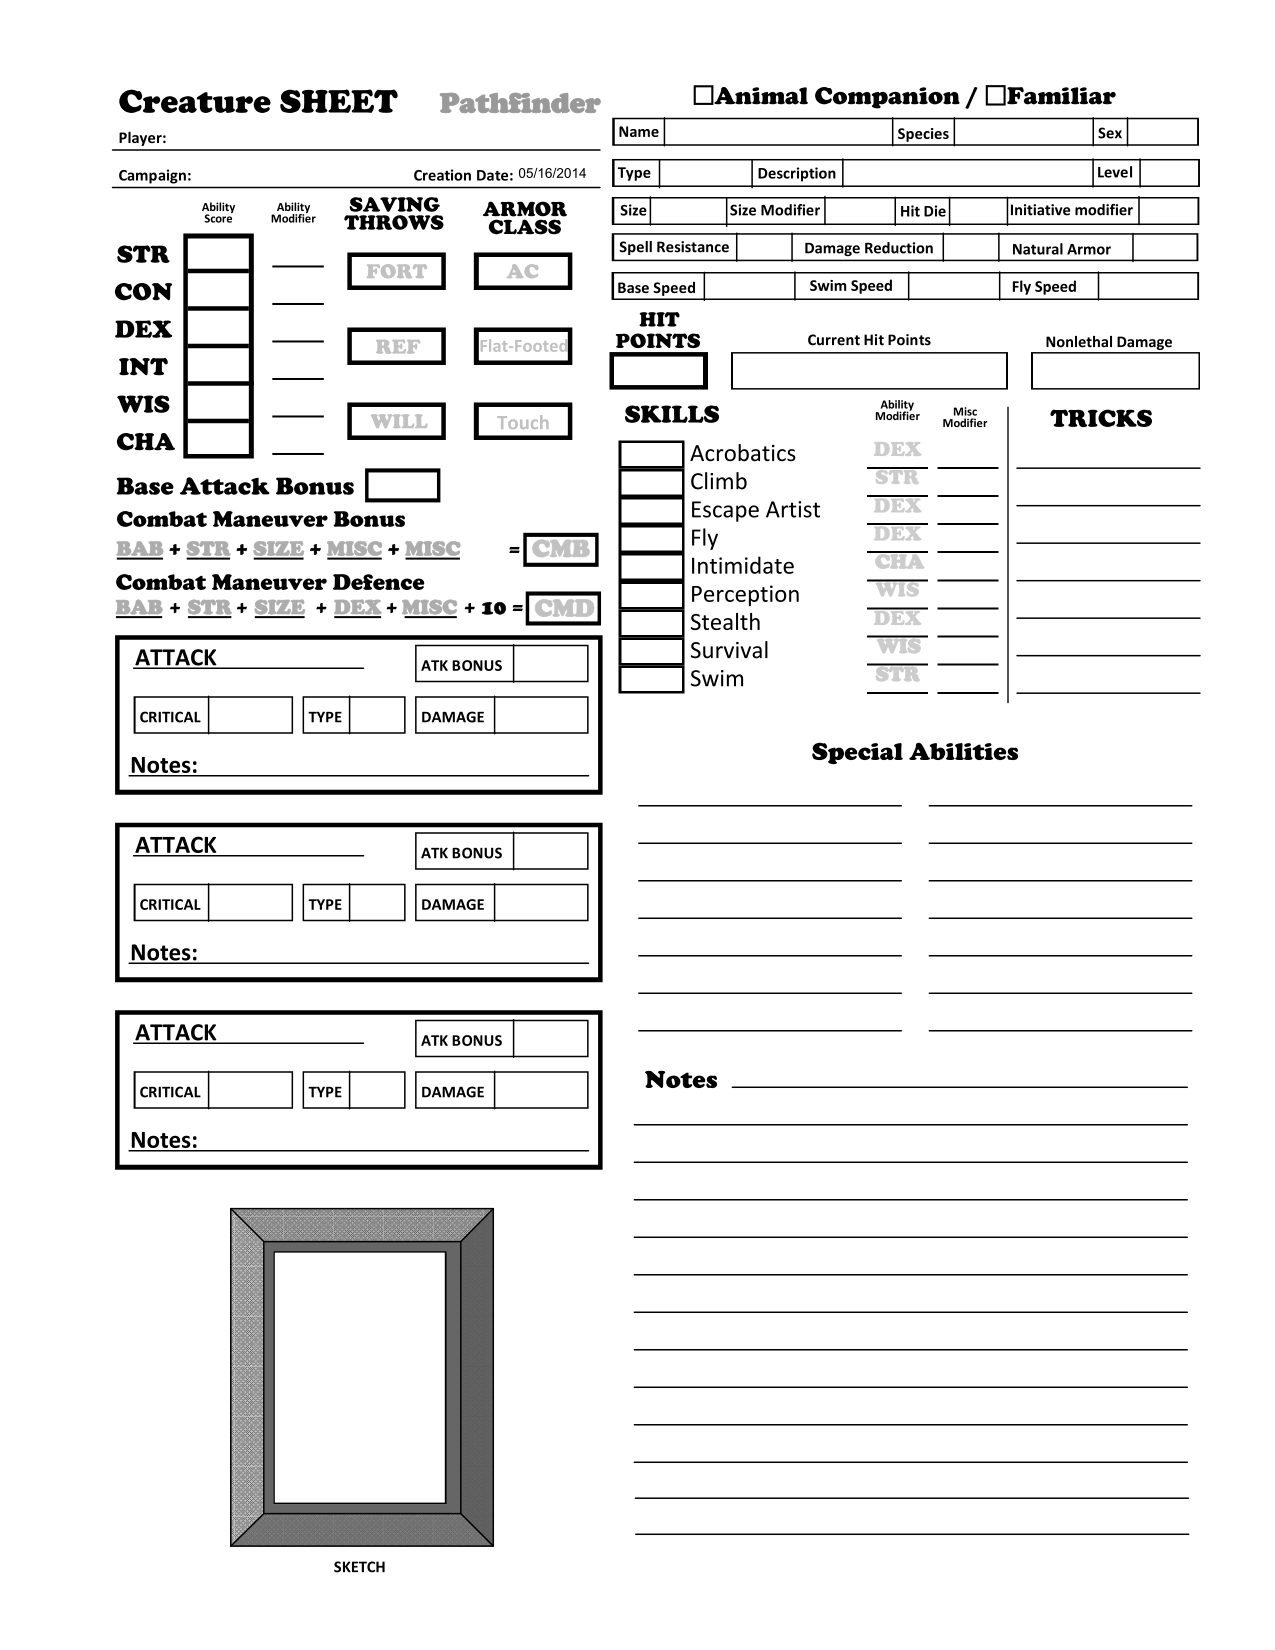 photograph about 5e Character Sheet Printable called Animal Spouse / Common Identity Sheets For